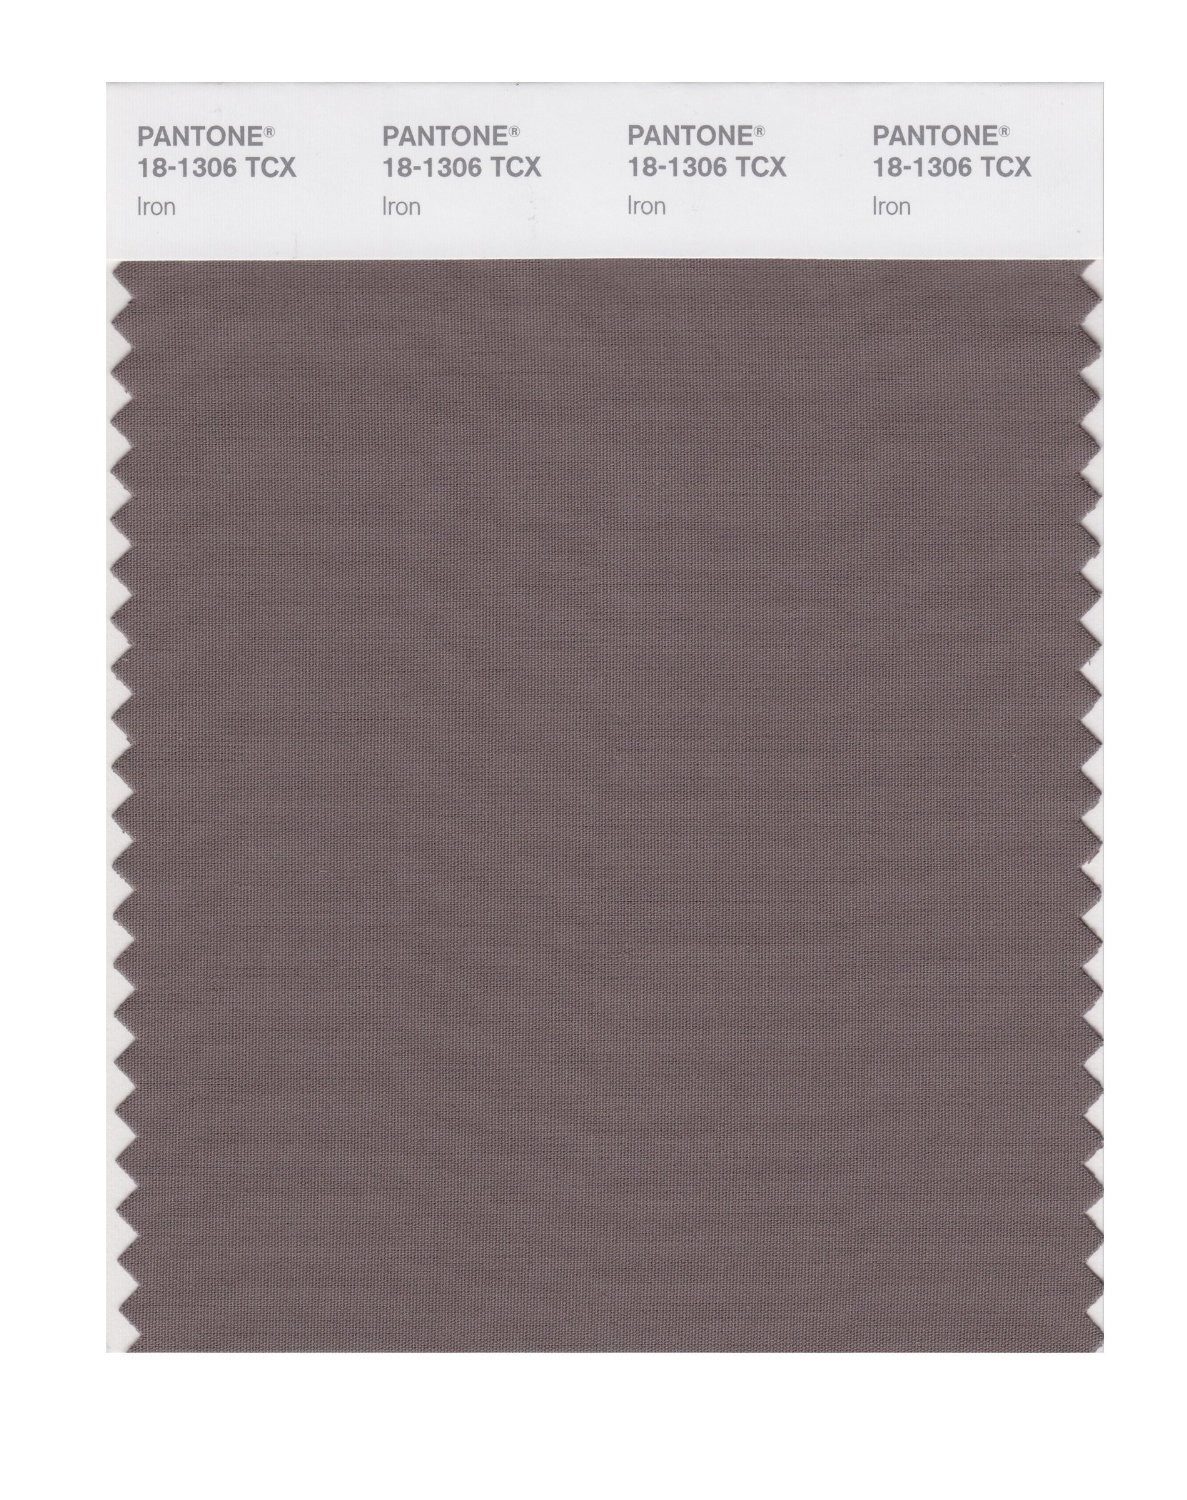 Pantone 18-1306 TCX Swatch Card Iron